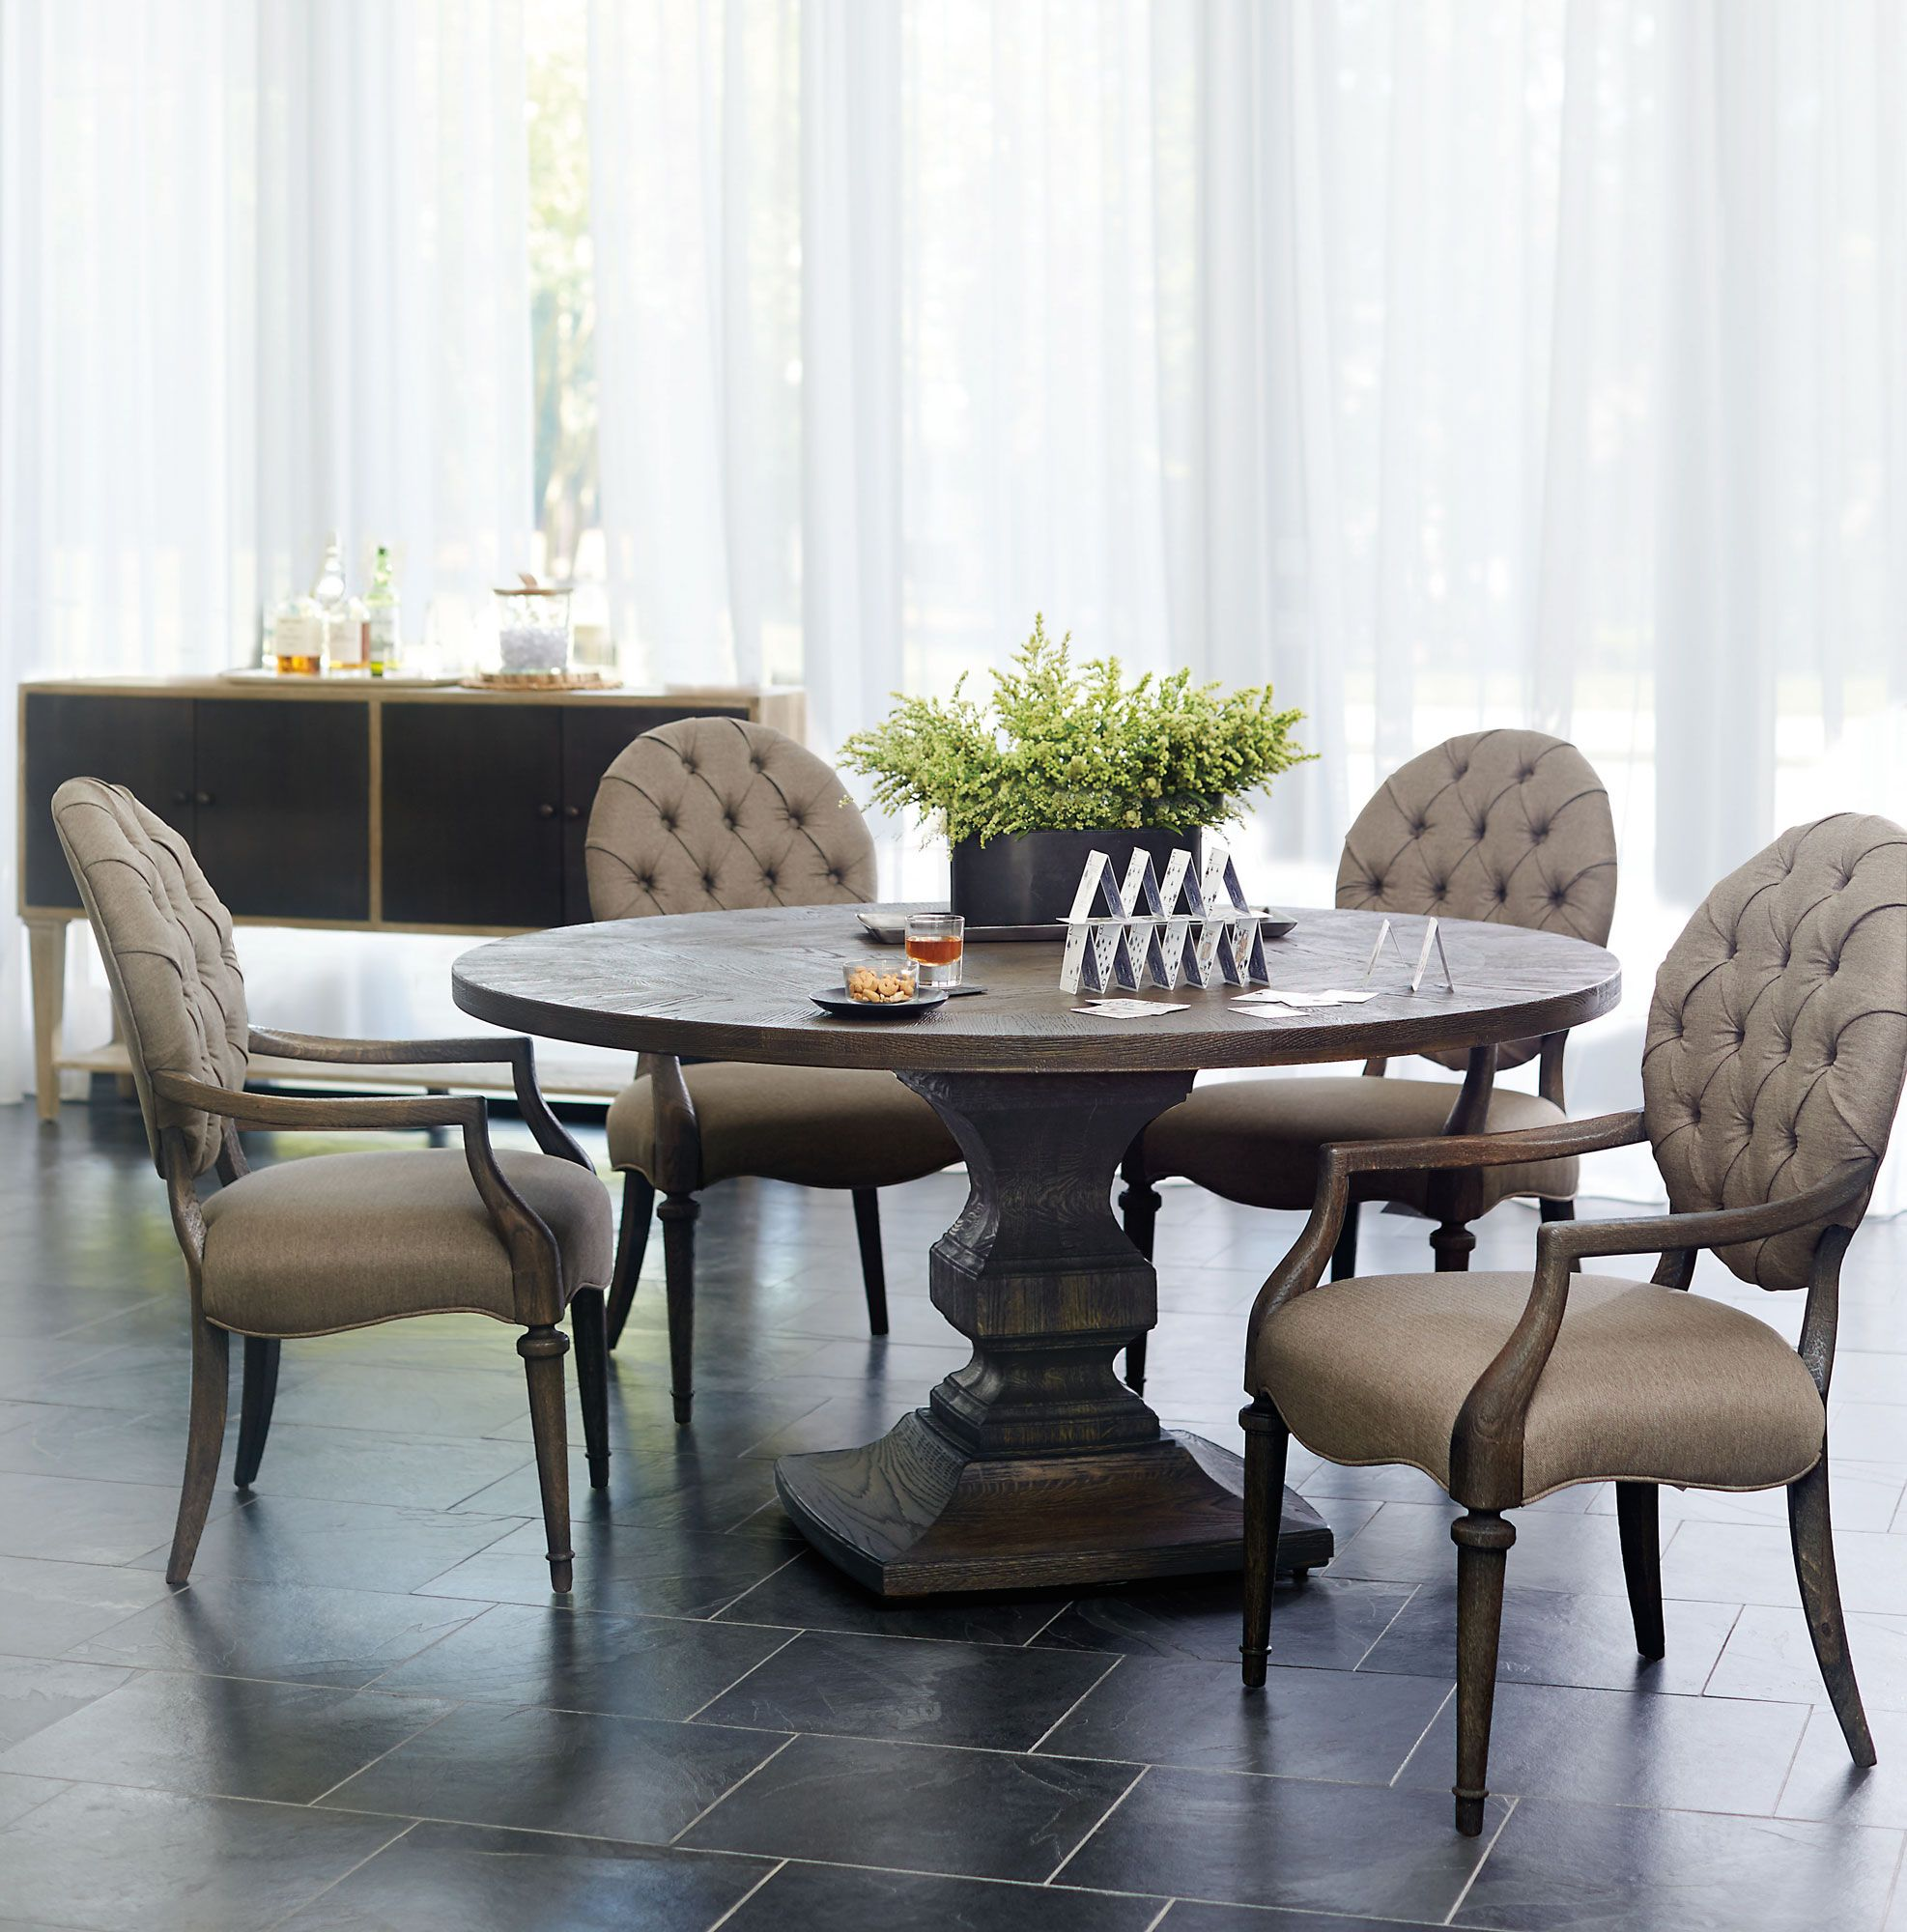 Bernhardt | Antiquarian Round Dining Table, Arm Chairs, And Sideboard | In  White Oak